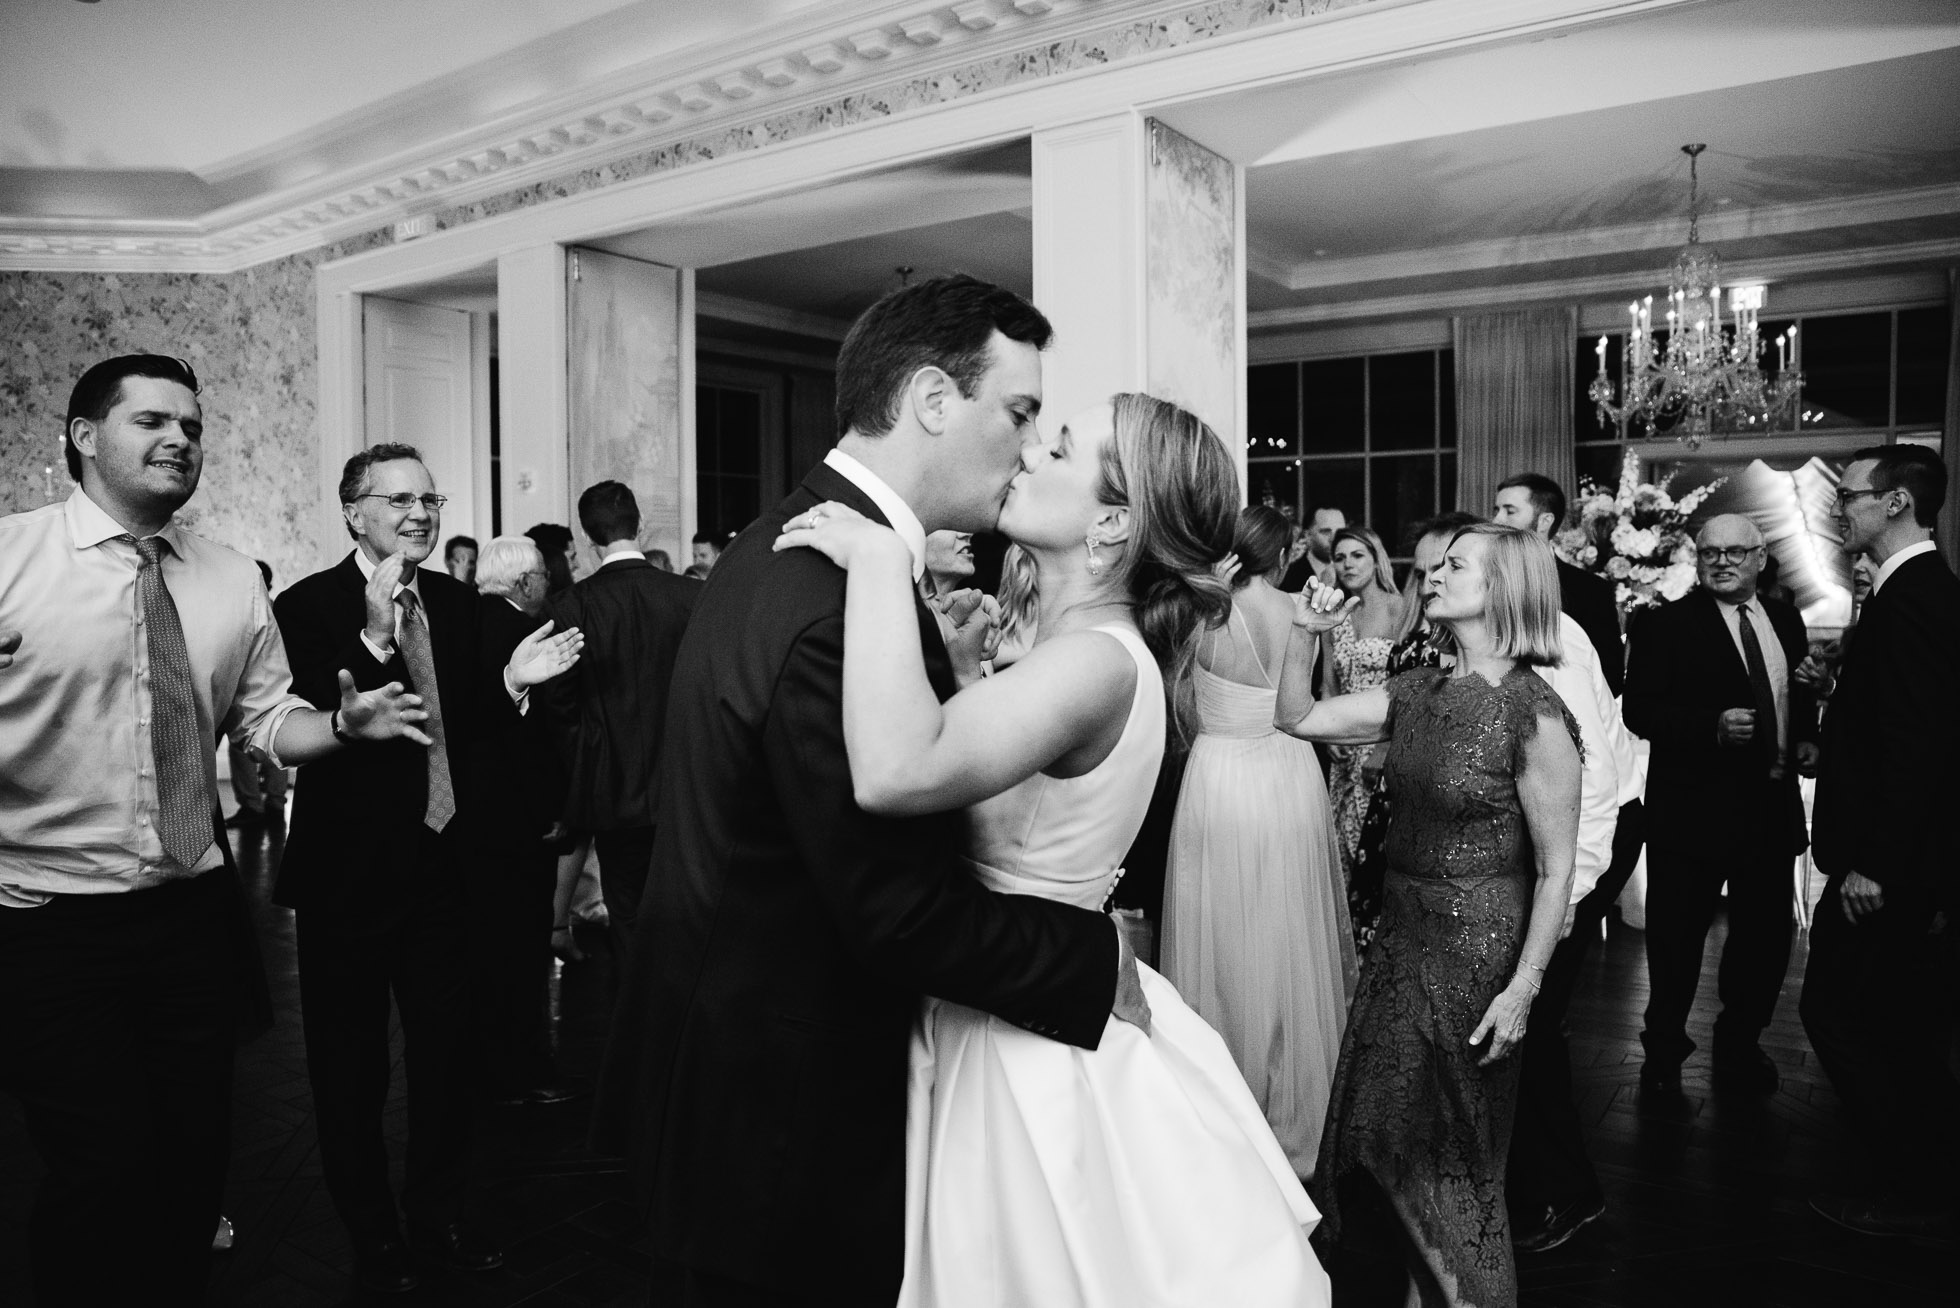 Wedding reception country club Pittsburgh wedding photographer Mariah Fisher Photography-3.jpg